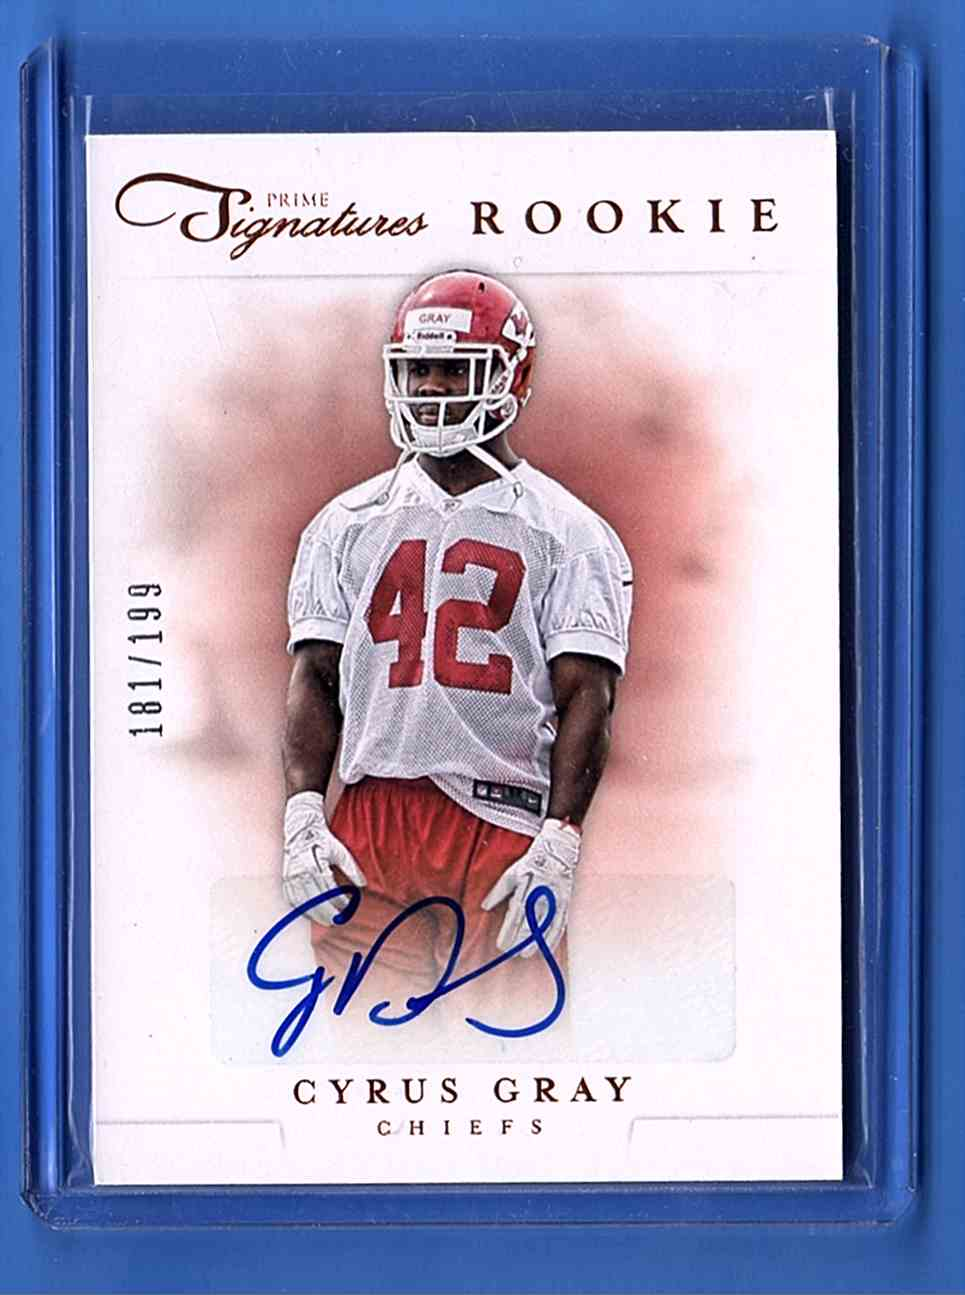 2012 Prime Signatures Cyrus Gray #183 card front image